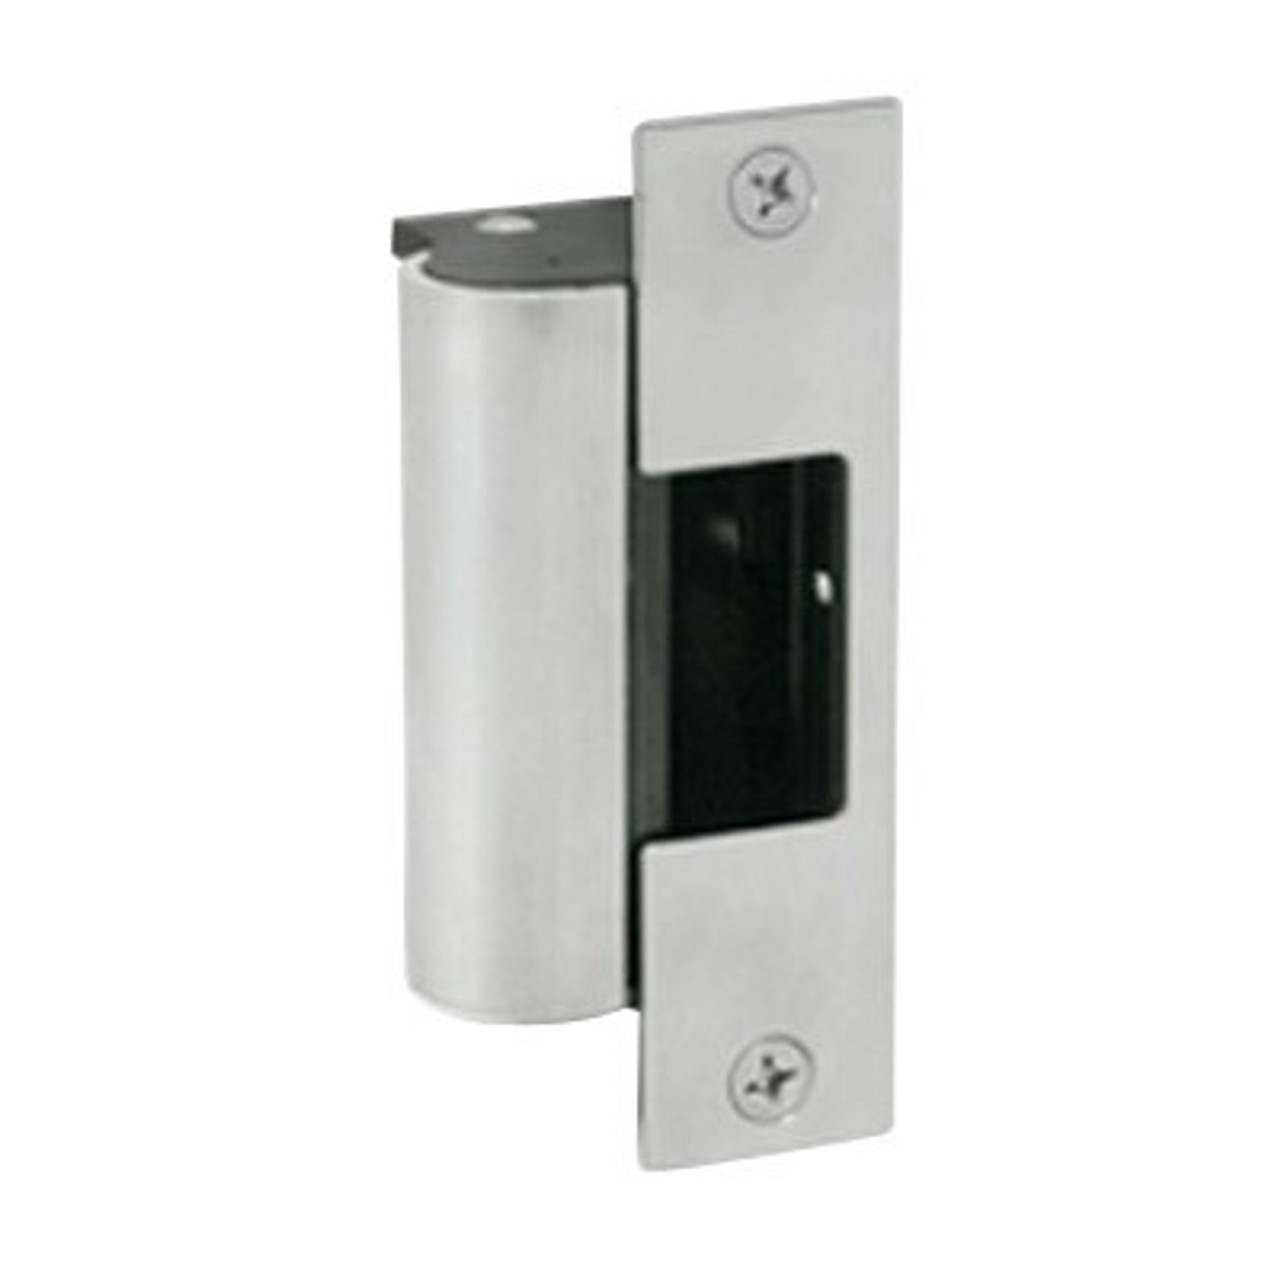 1006CAS-F-630 Hes 1006 Series Complete Electric Strike for Deadbolt Recapture Lock in Satin Stainless Finish